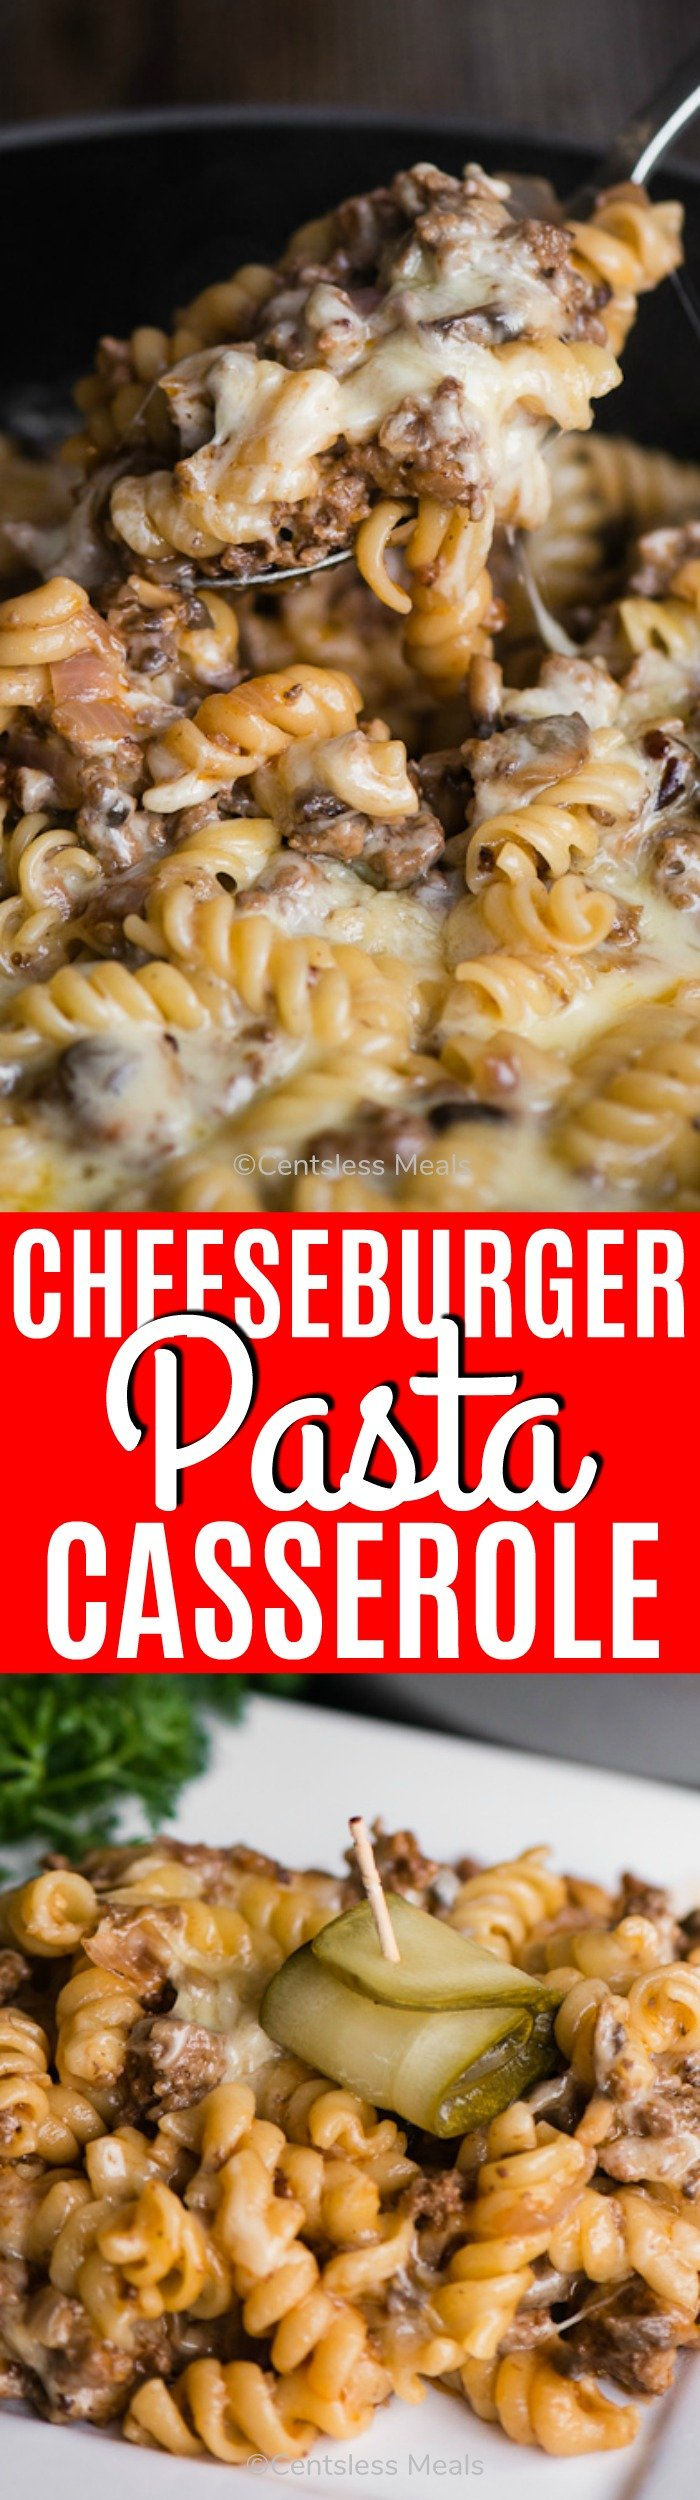 Cheeseburger pasta casserole on a plate and in a pan with a title